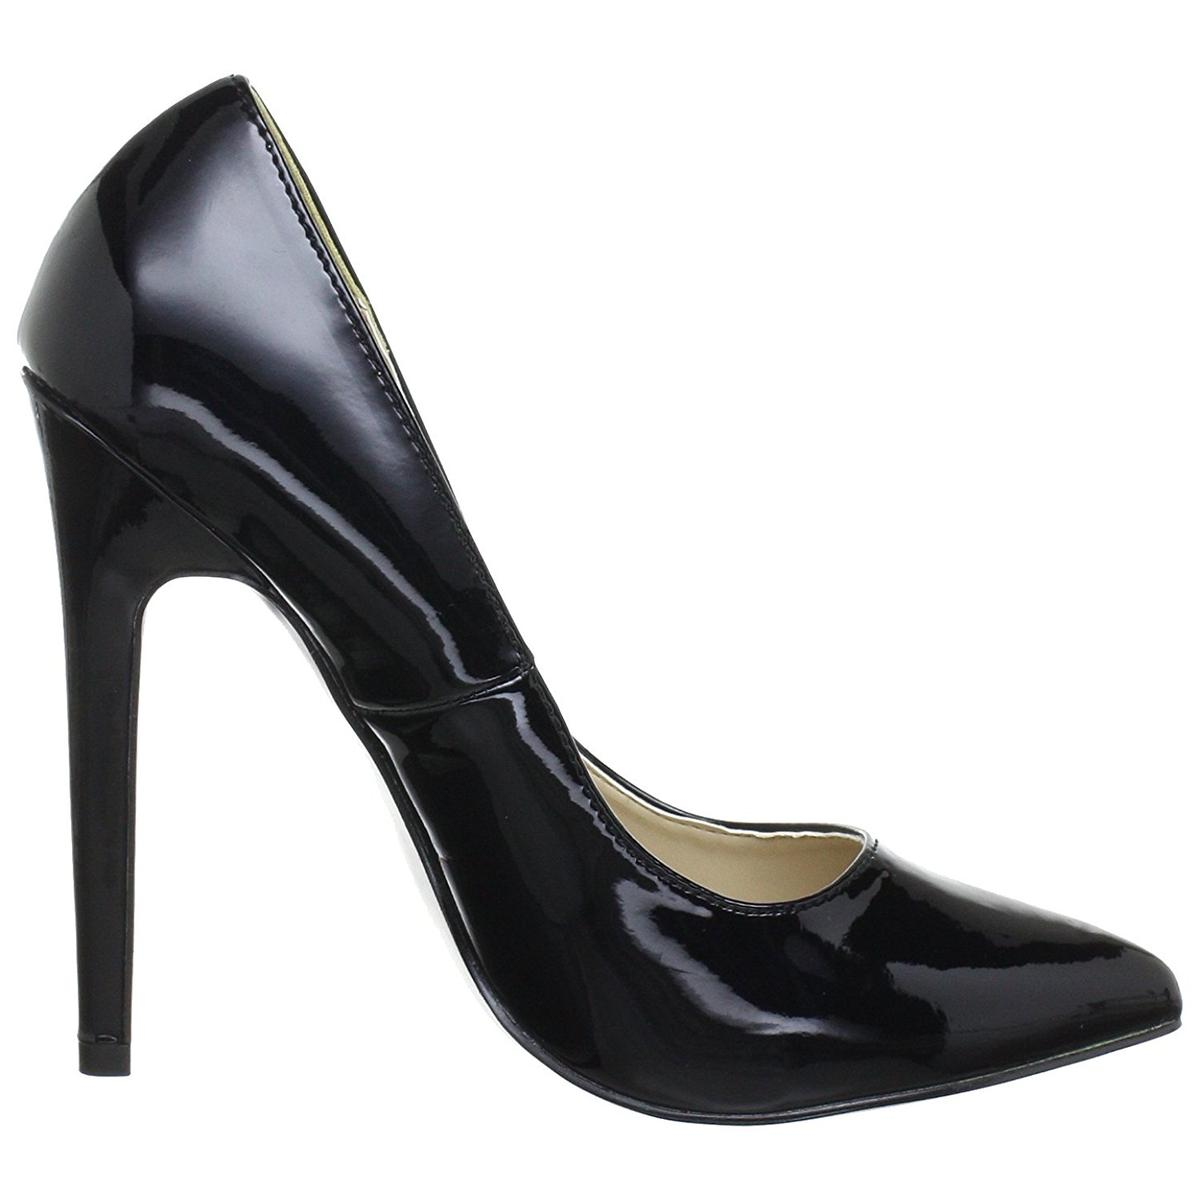 Pleaser Sexy-20/B Womens Black Heels Economical, stylish, and eye-catching shoes